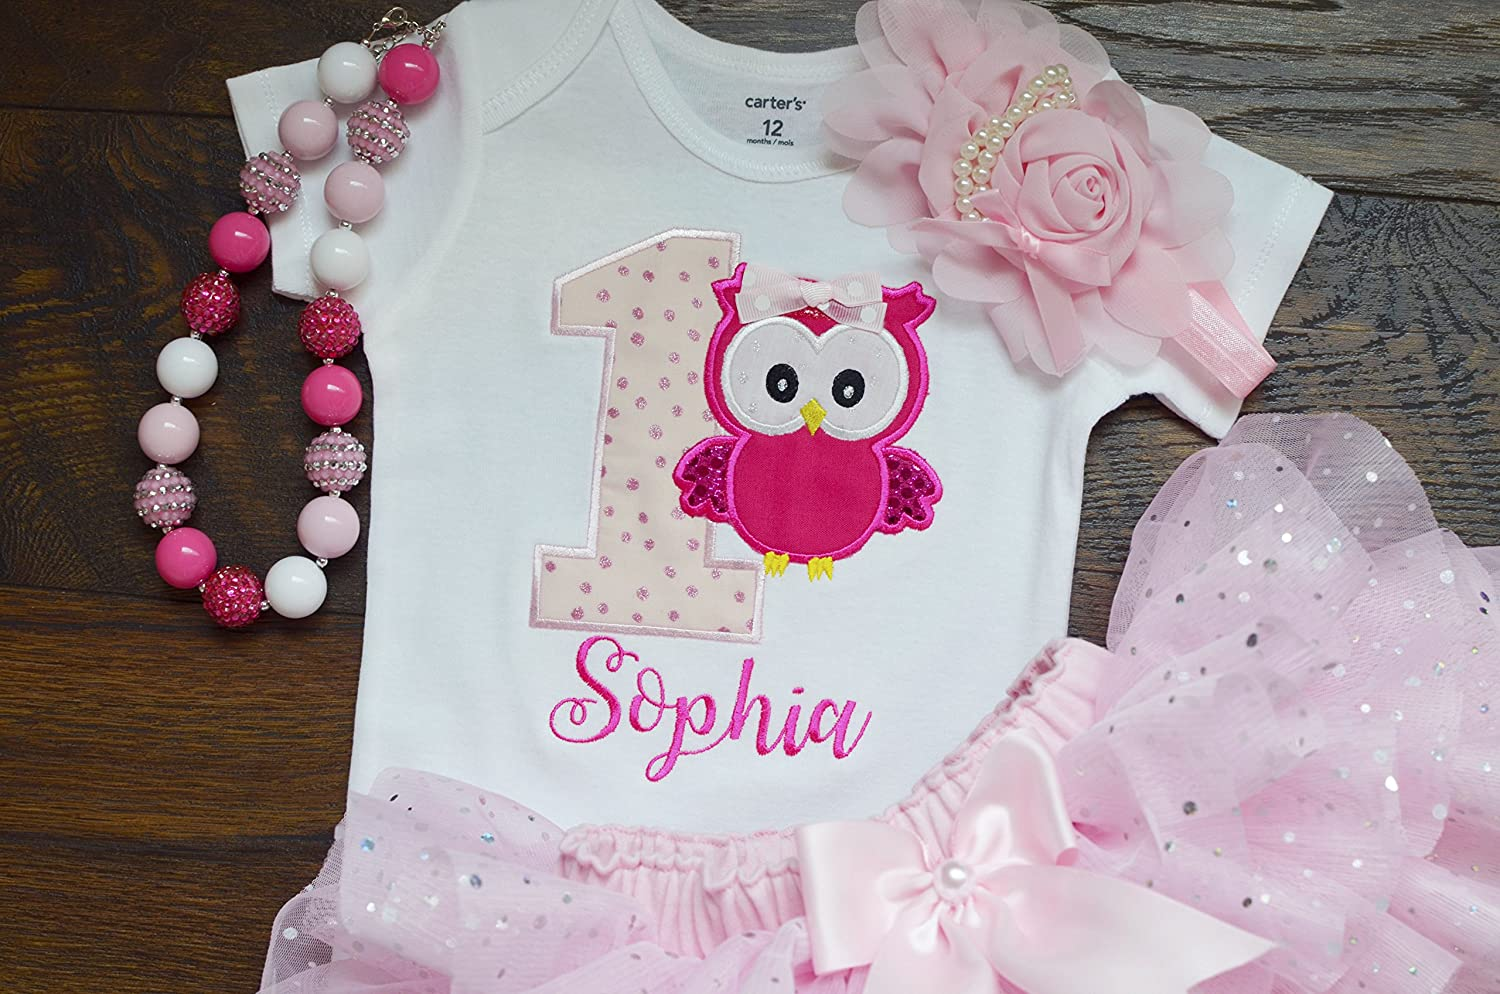 Handmade first birthday outfit for girls,owl birthday outfit,cake smash outfit,one year old girl birthday